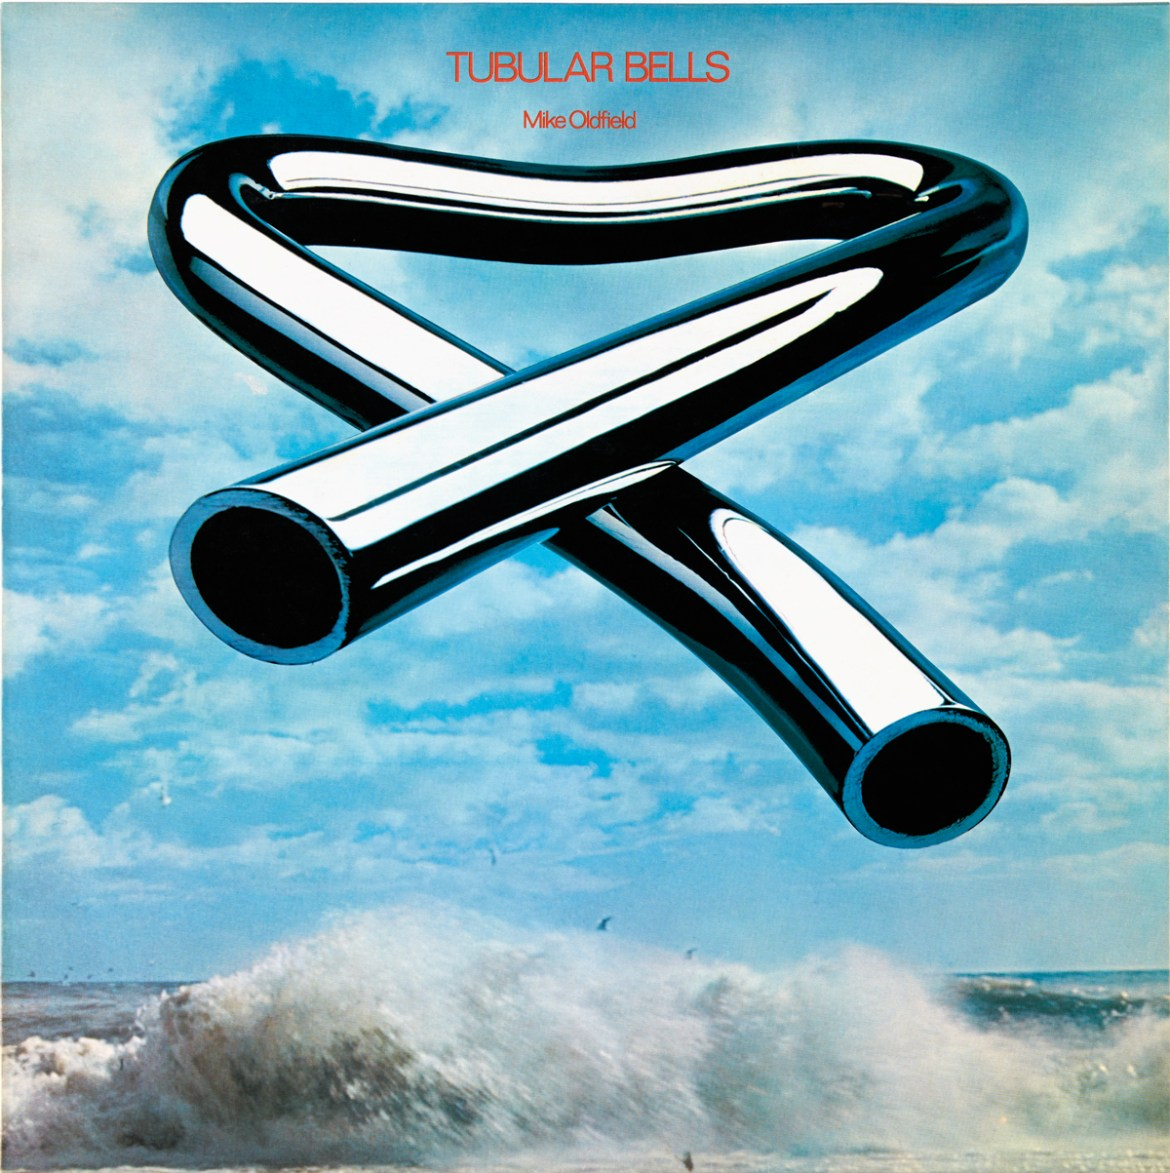 tubular bells trove key archive